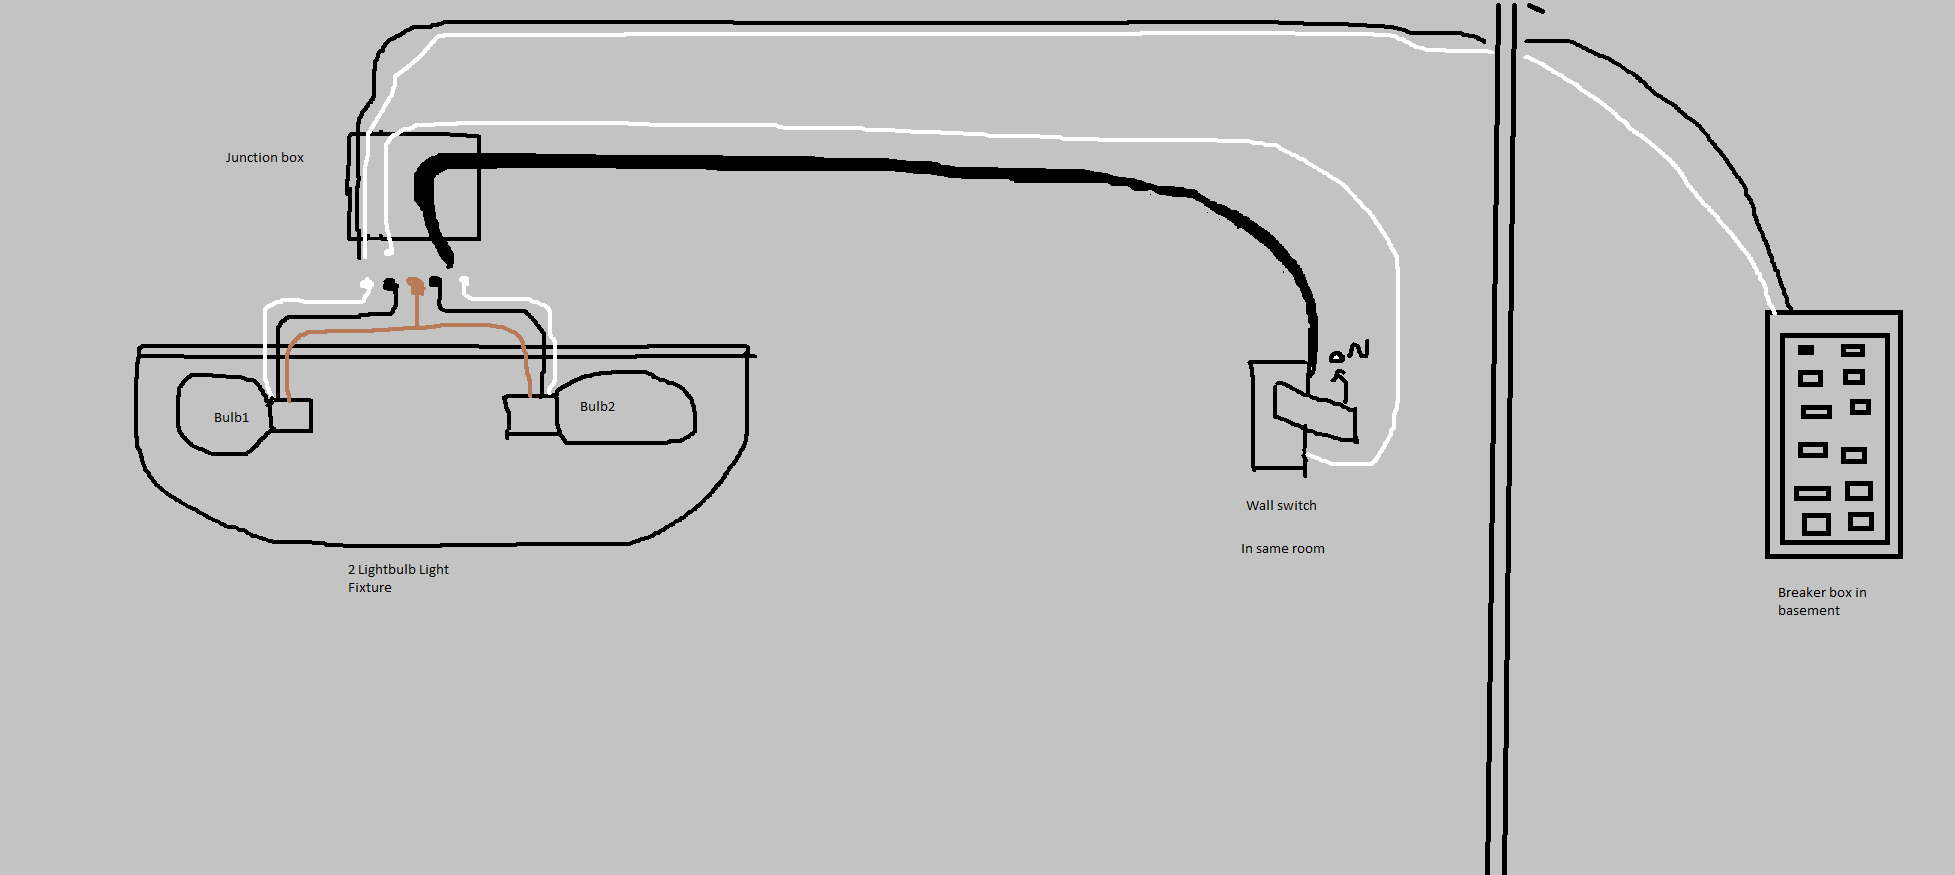 parallel wiring diagram for recessed lighting